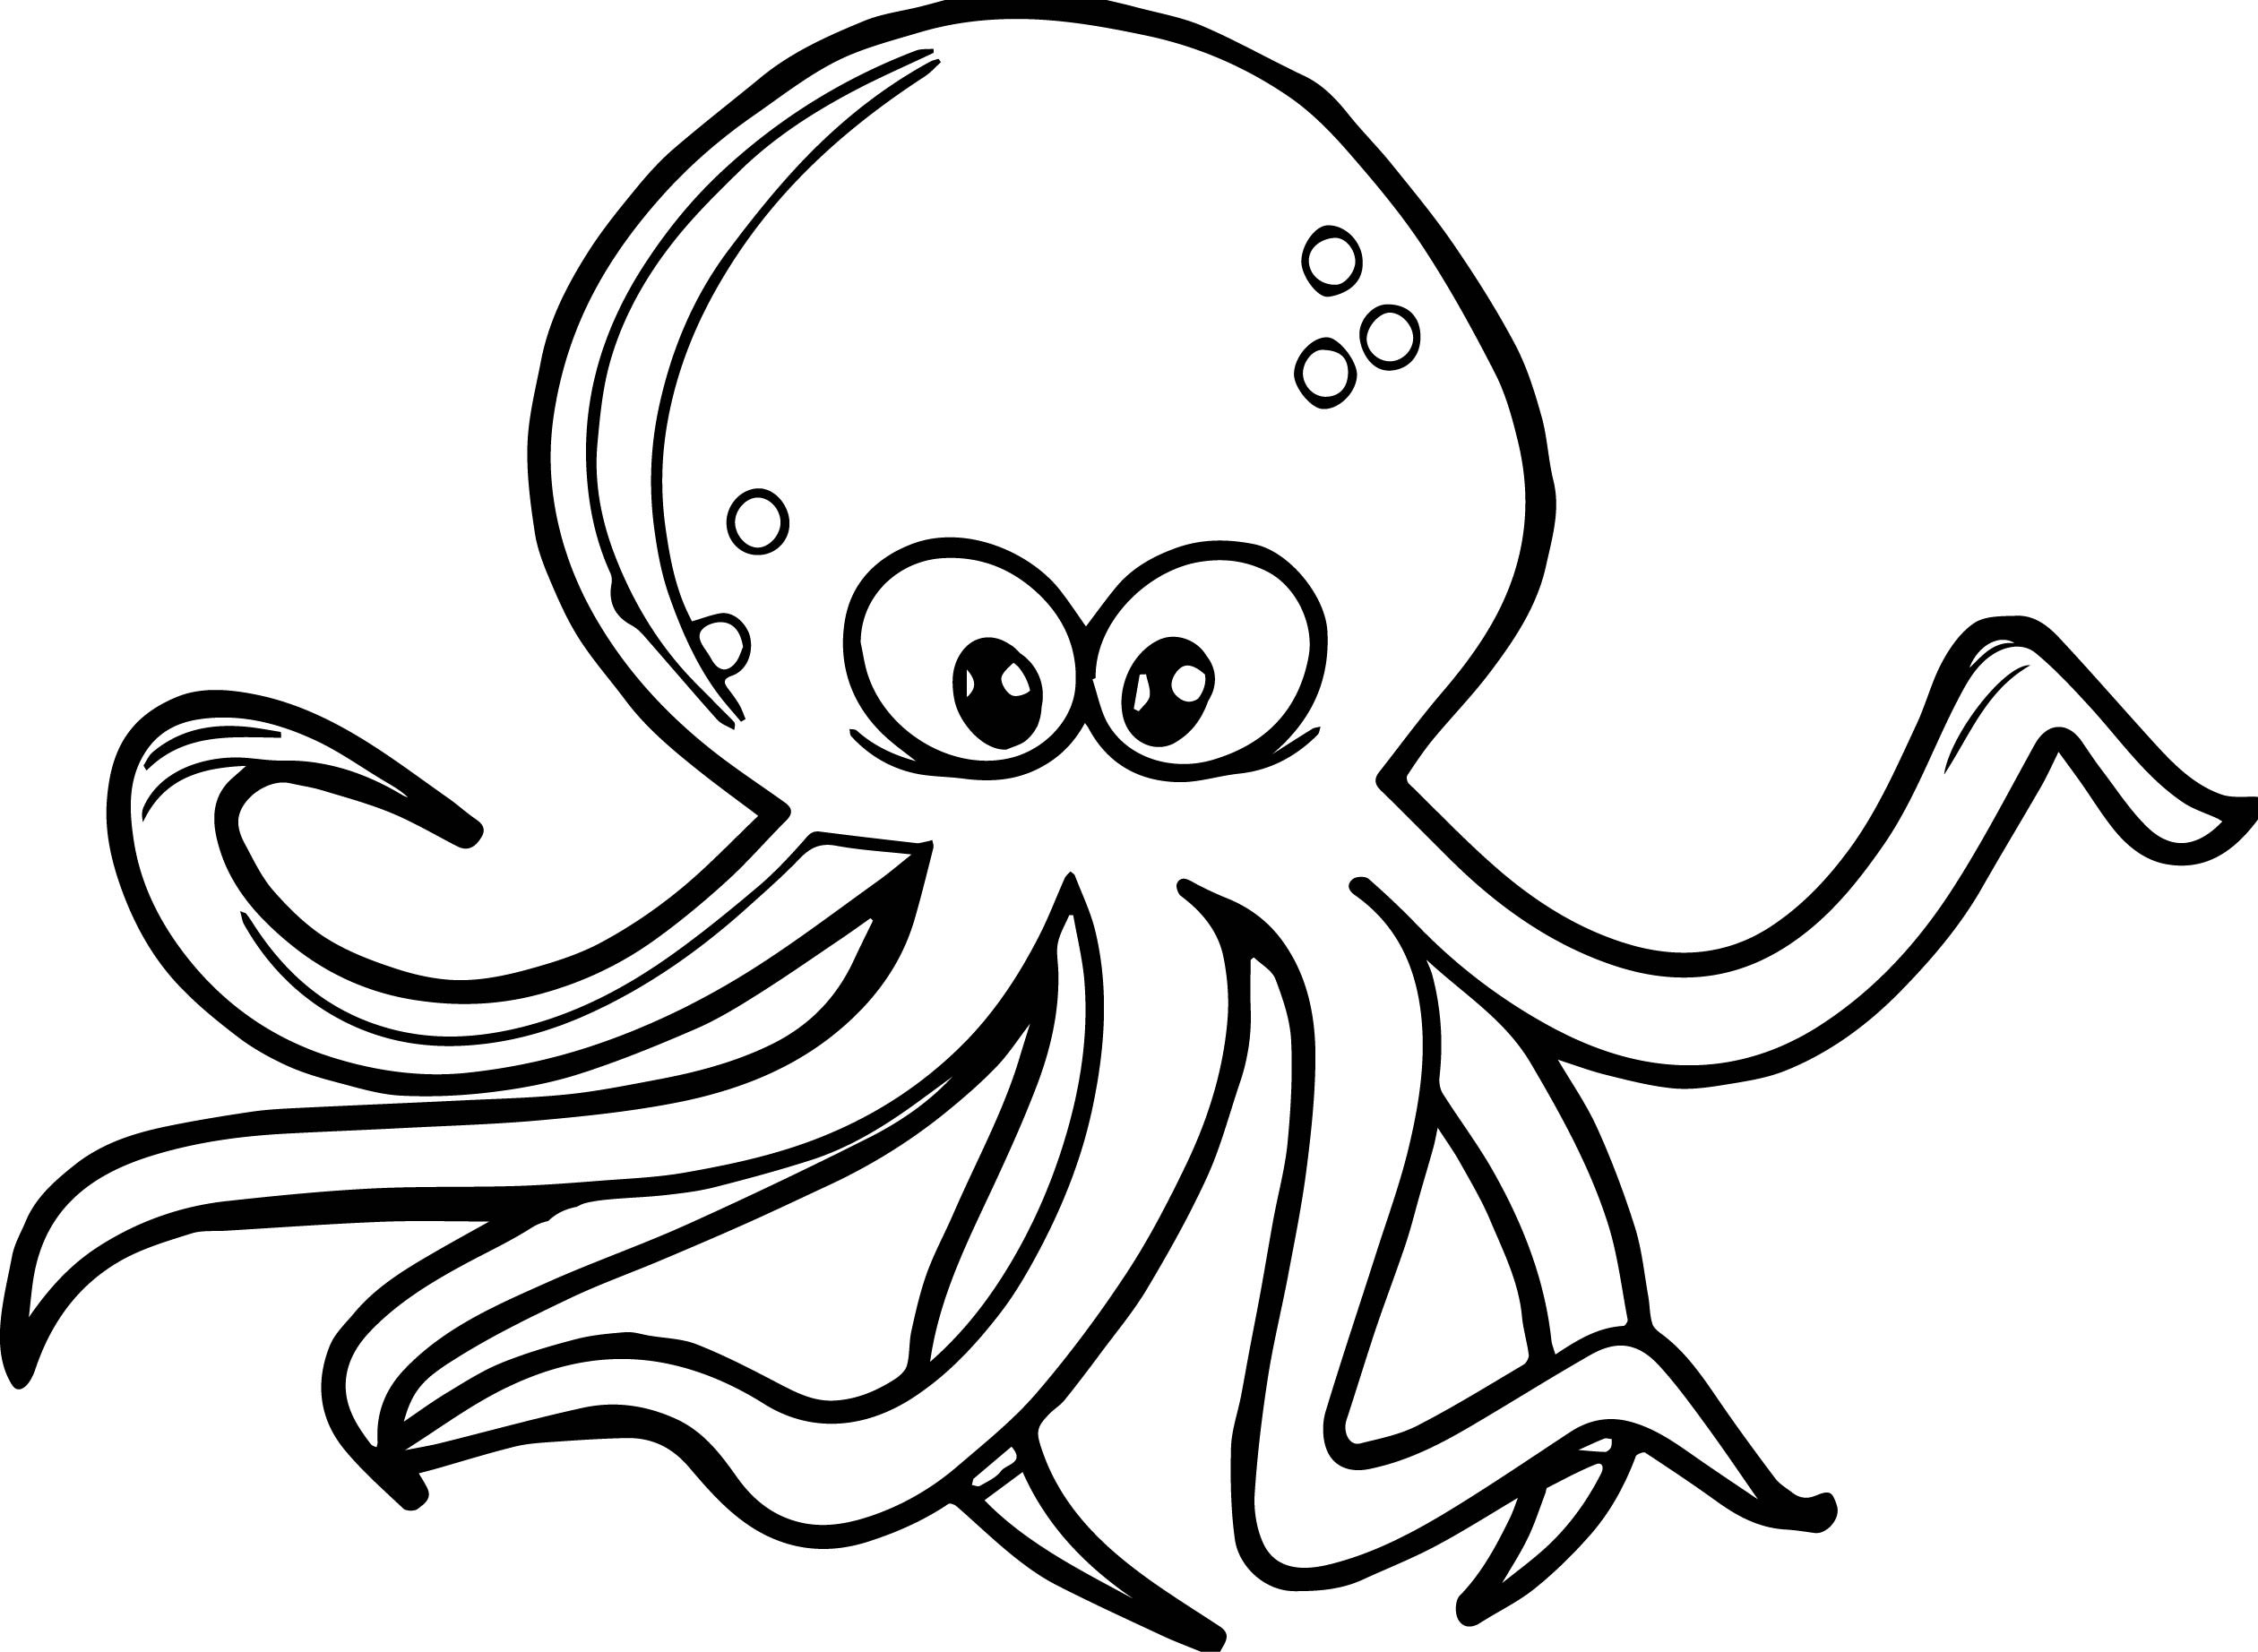 2520x1844 New Octopus Page To Color Gallery Printable Coloring Sheet